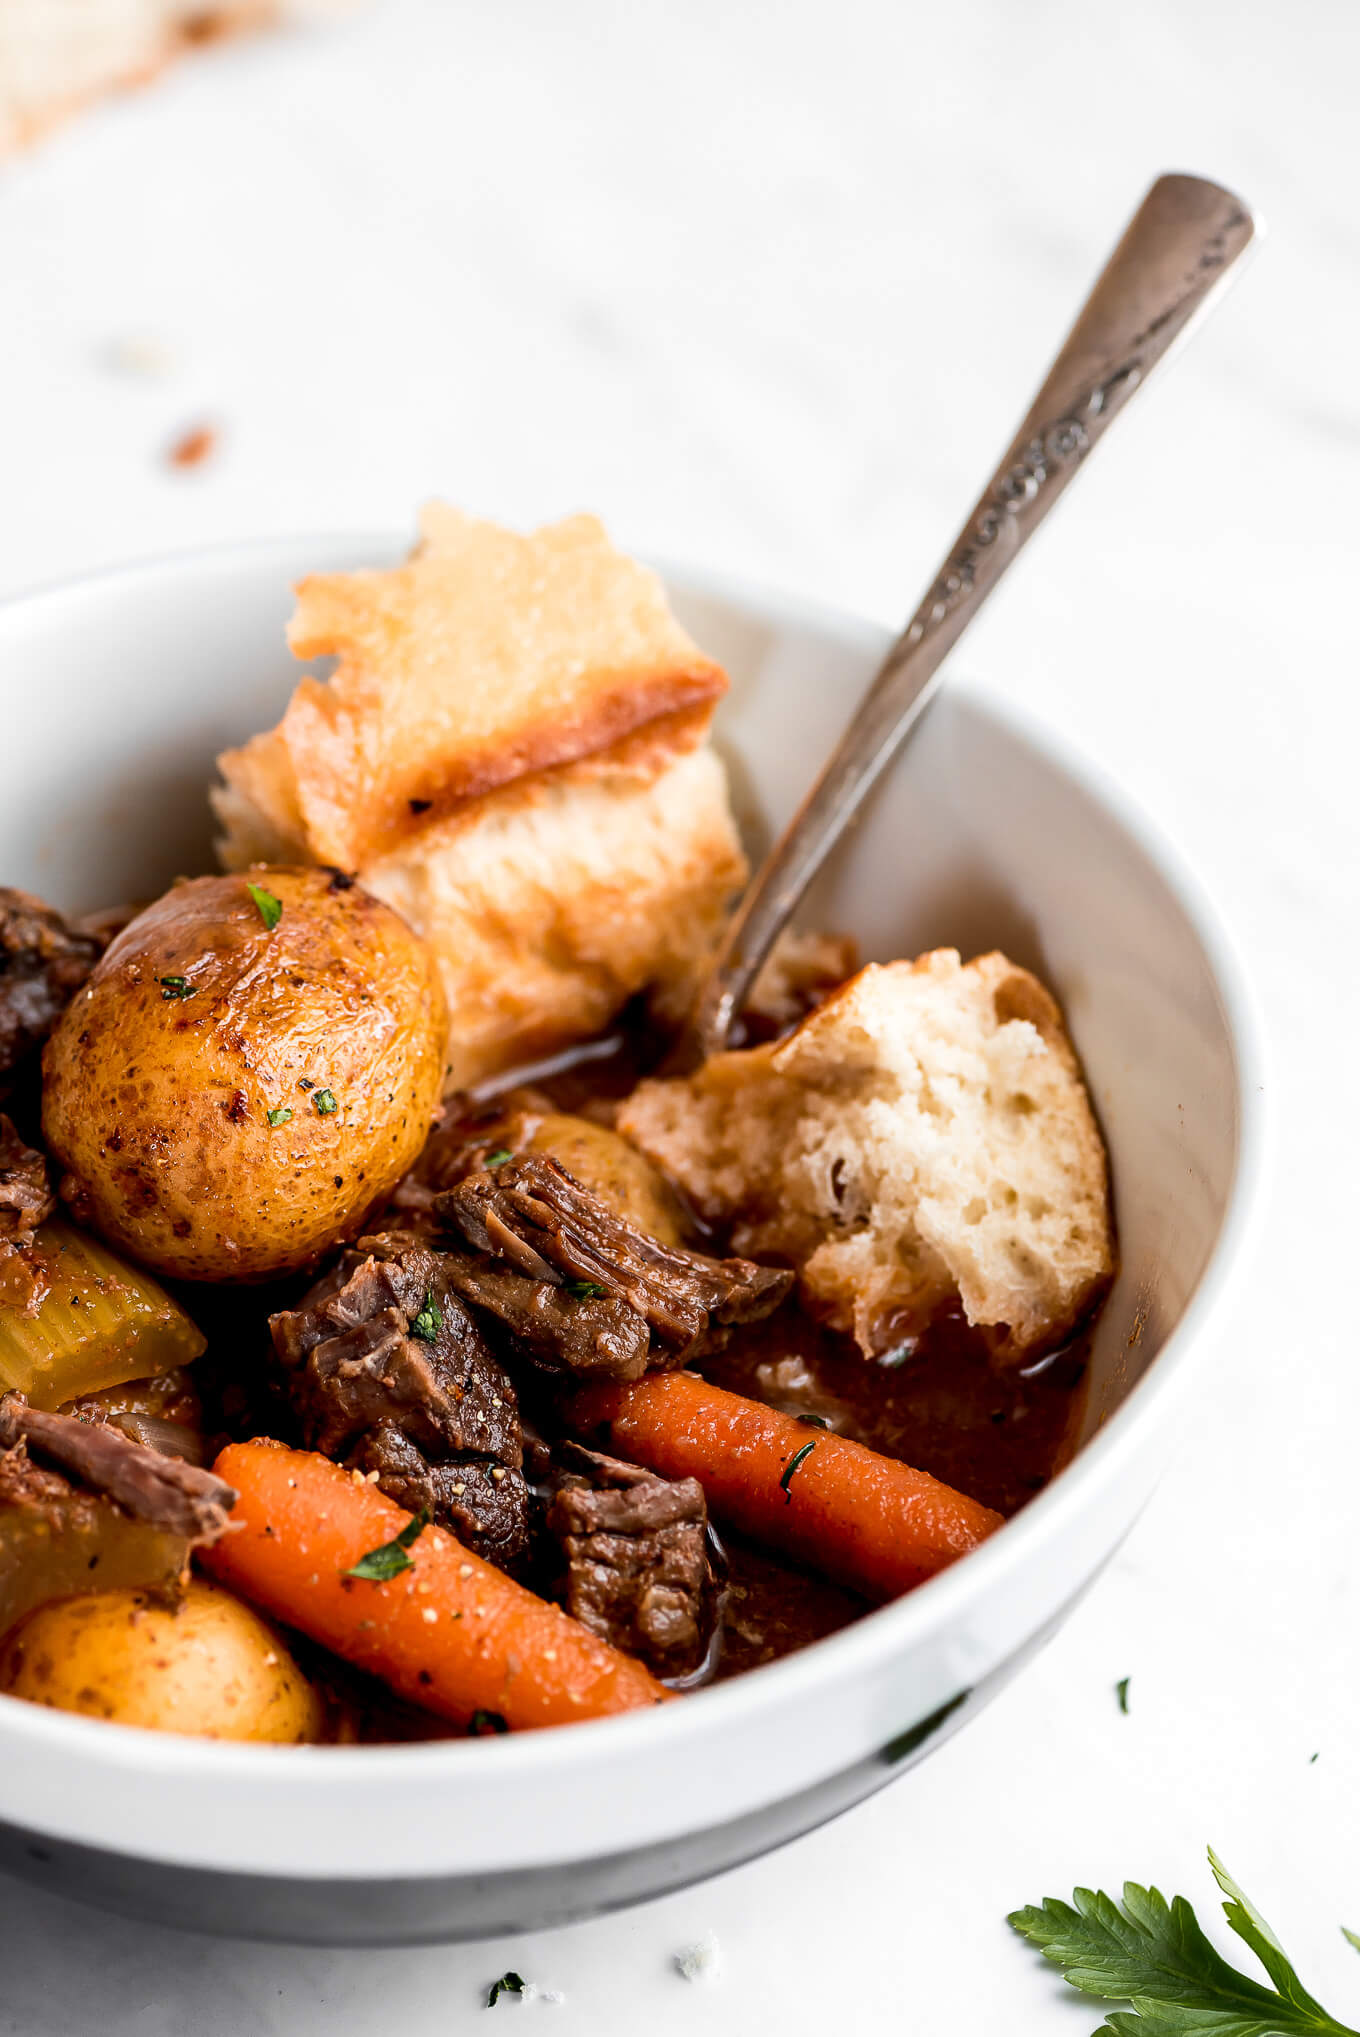 A close up of a bowl of tender, fall-apart beef, potatoes, carrots, and french bread.